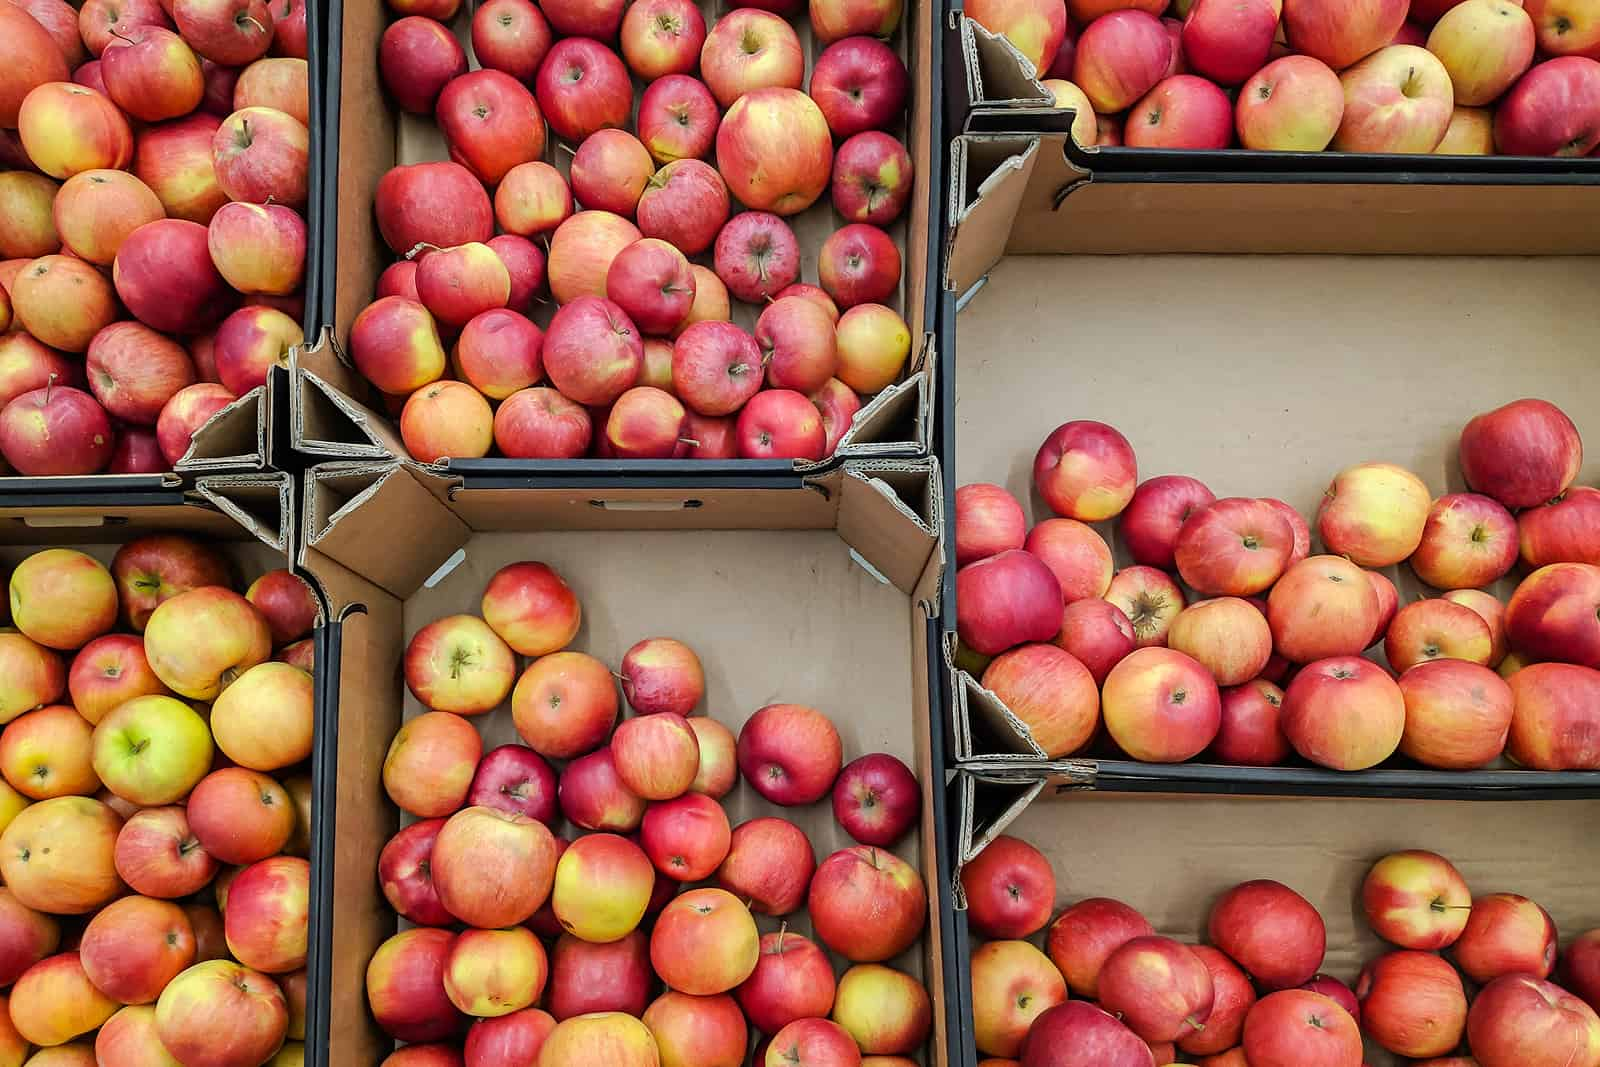 apple picking in CT - image of cardboard boxes from overhead filled with red and golden apples